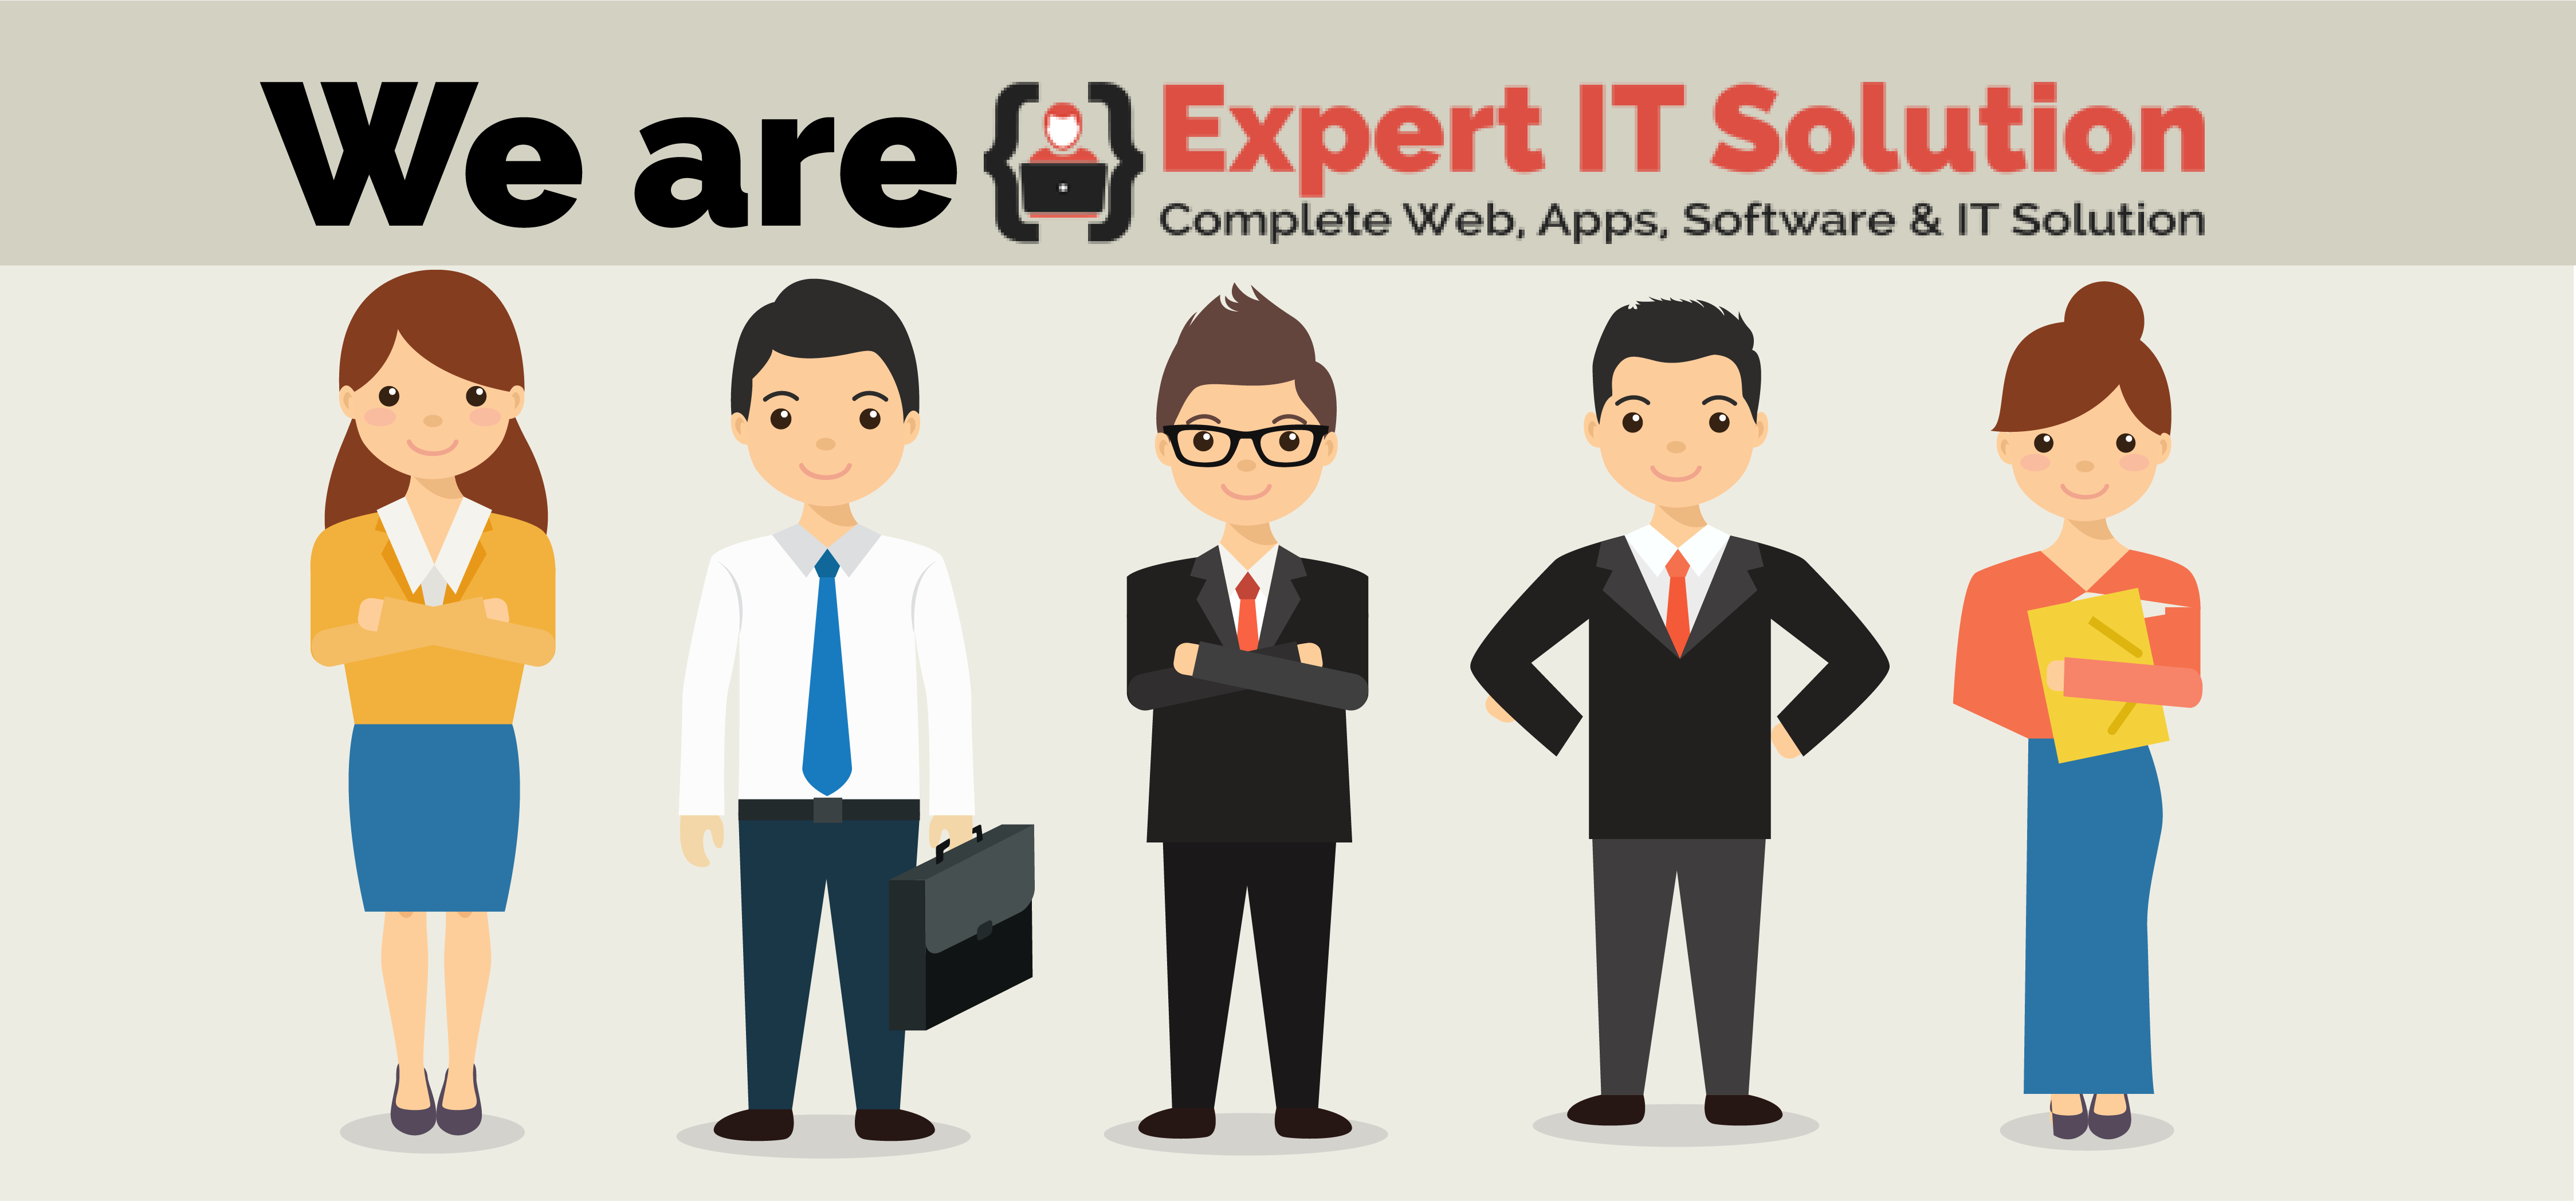 web development company about us expert it solution